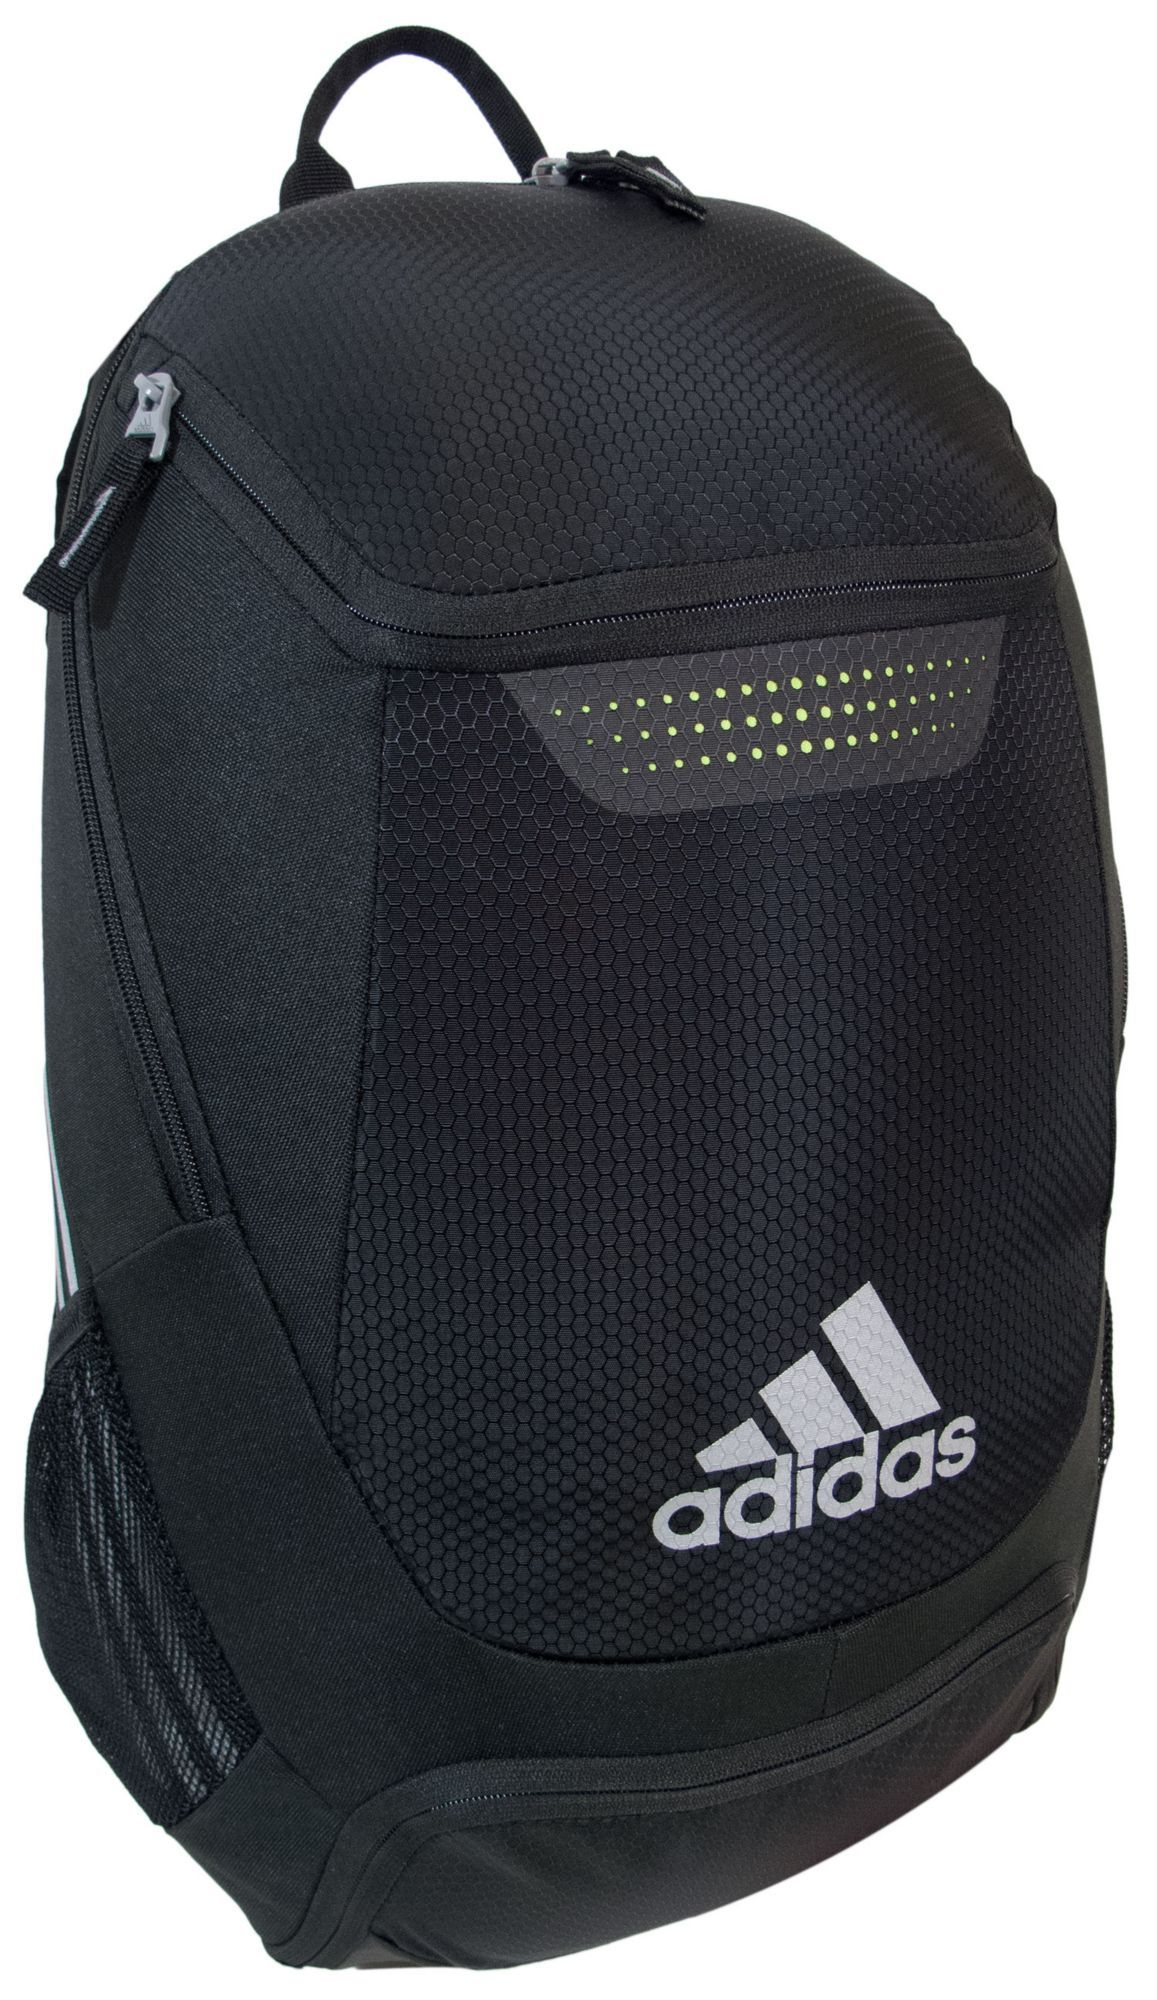 e9c93c3924c adidas Stadium Team Backpack   Products   Backpacks, Bags, Adidas